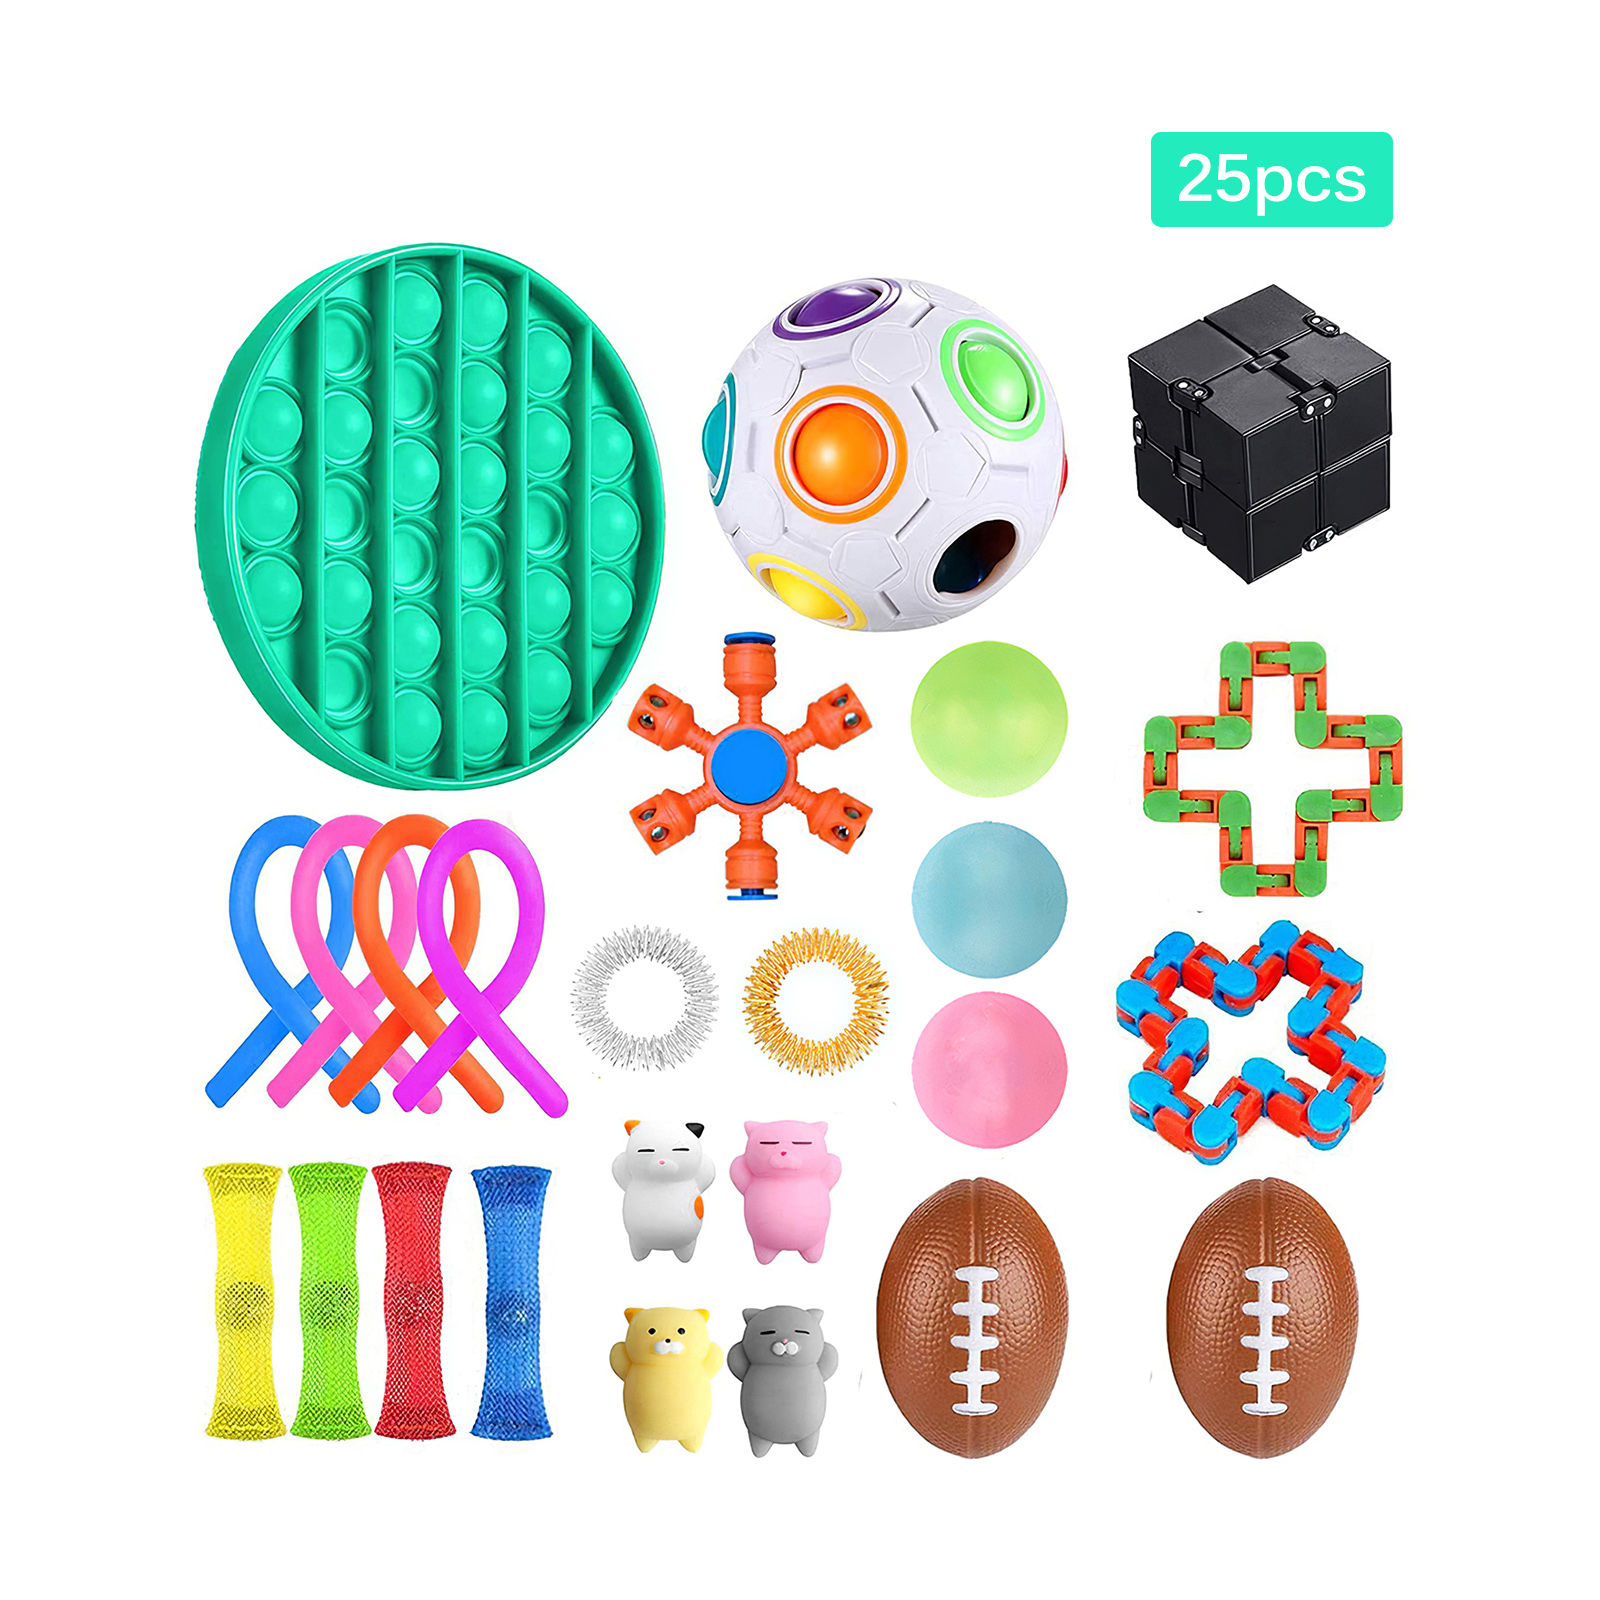 20/25PCS Package Fidget Sensory Toy Set Noodle Rope Anti-Stress Set Vent Decompression Toy AutismTong Relieve Anxiety Kids Adult img2